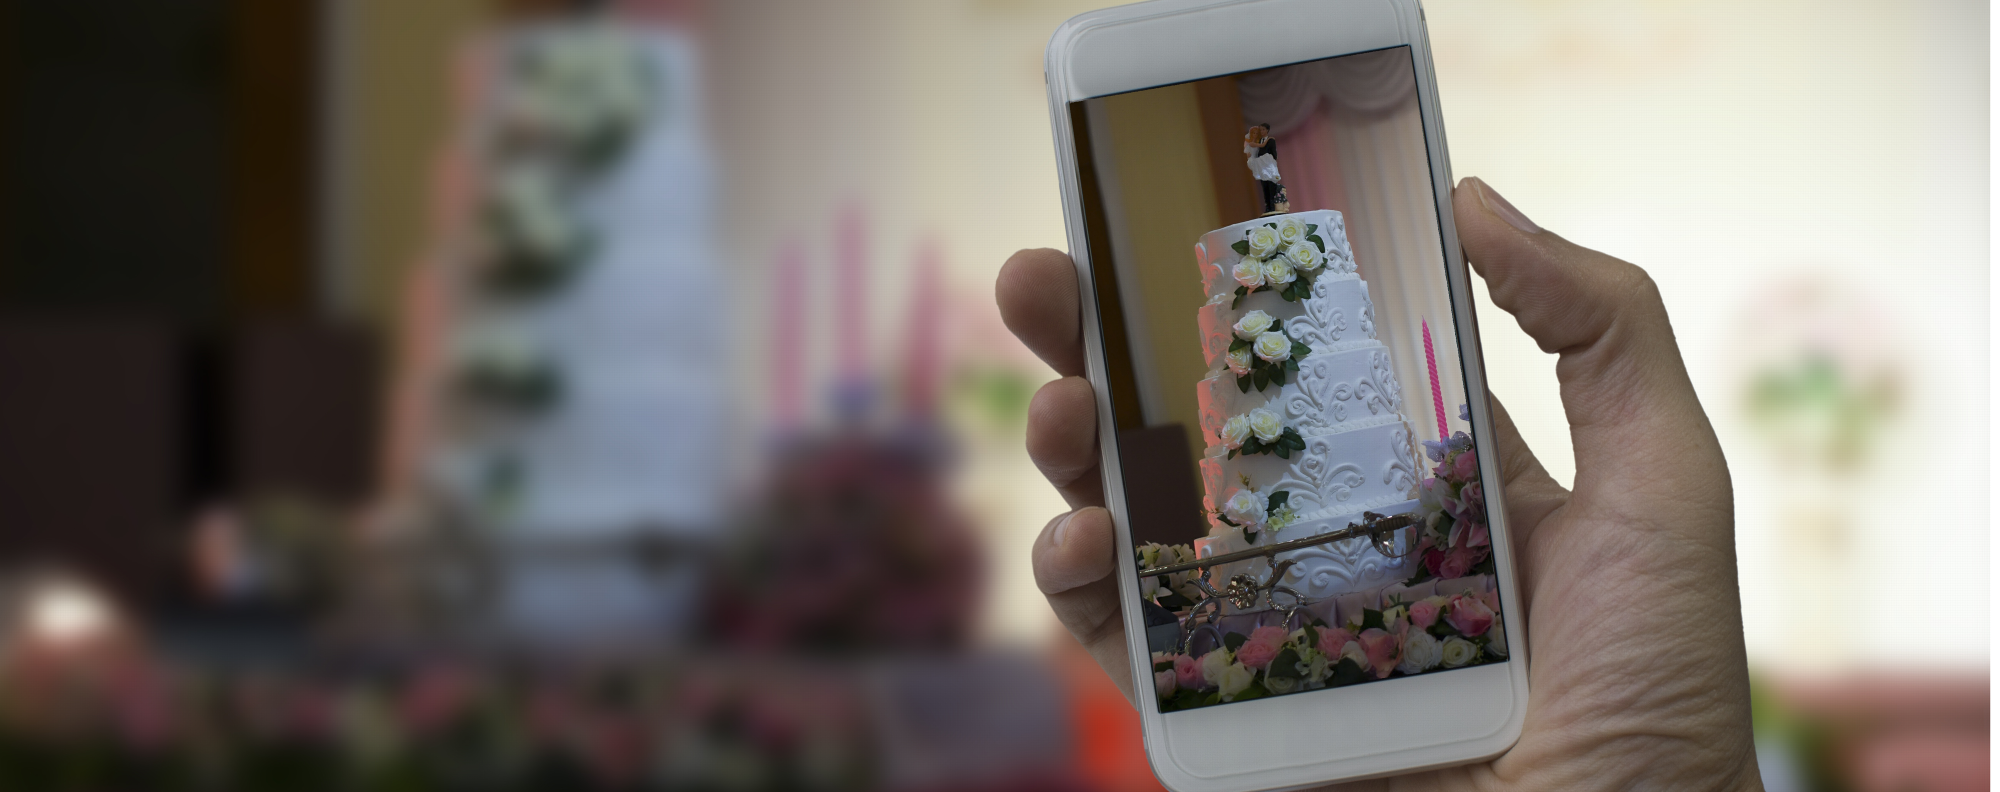 From venues to themes to wedding vendors, there's an app or website that's just right for you